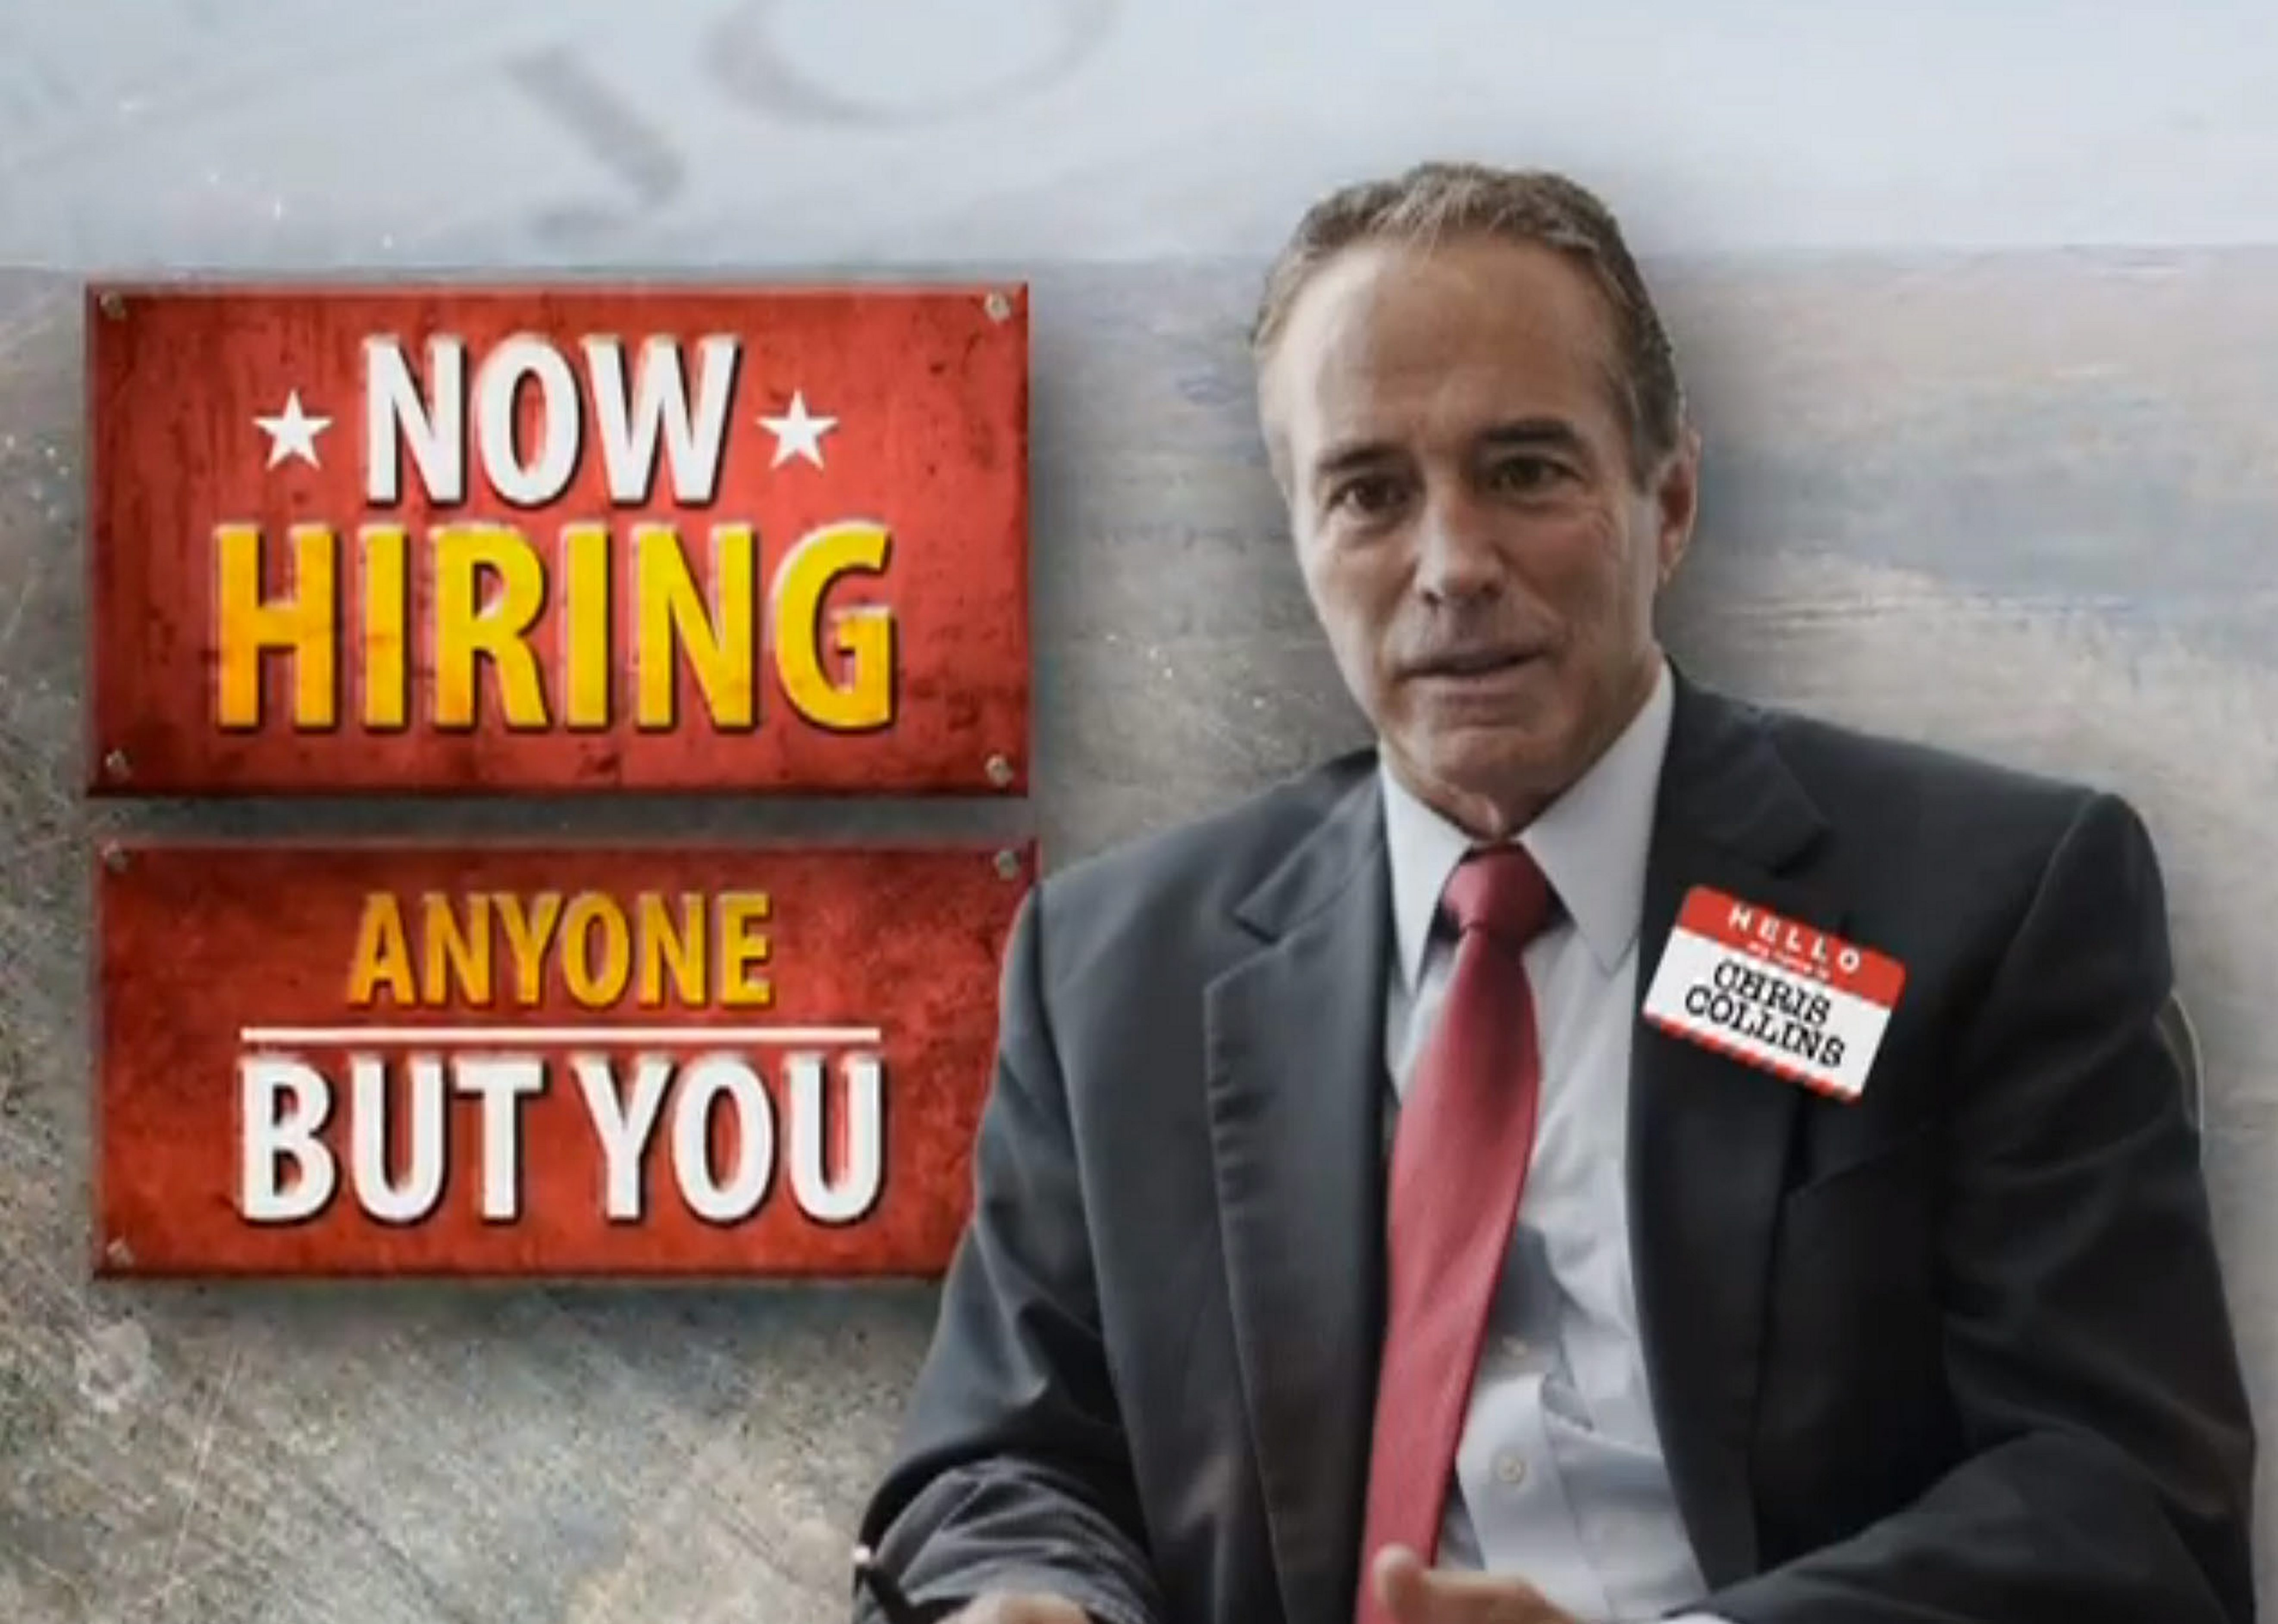 Claims in a new ad attacking Chris Collins are misleading.